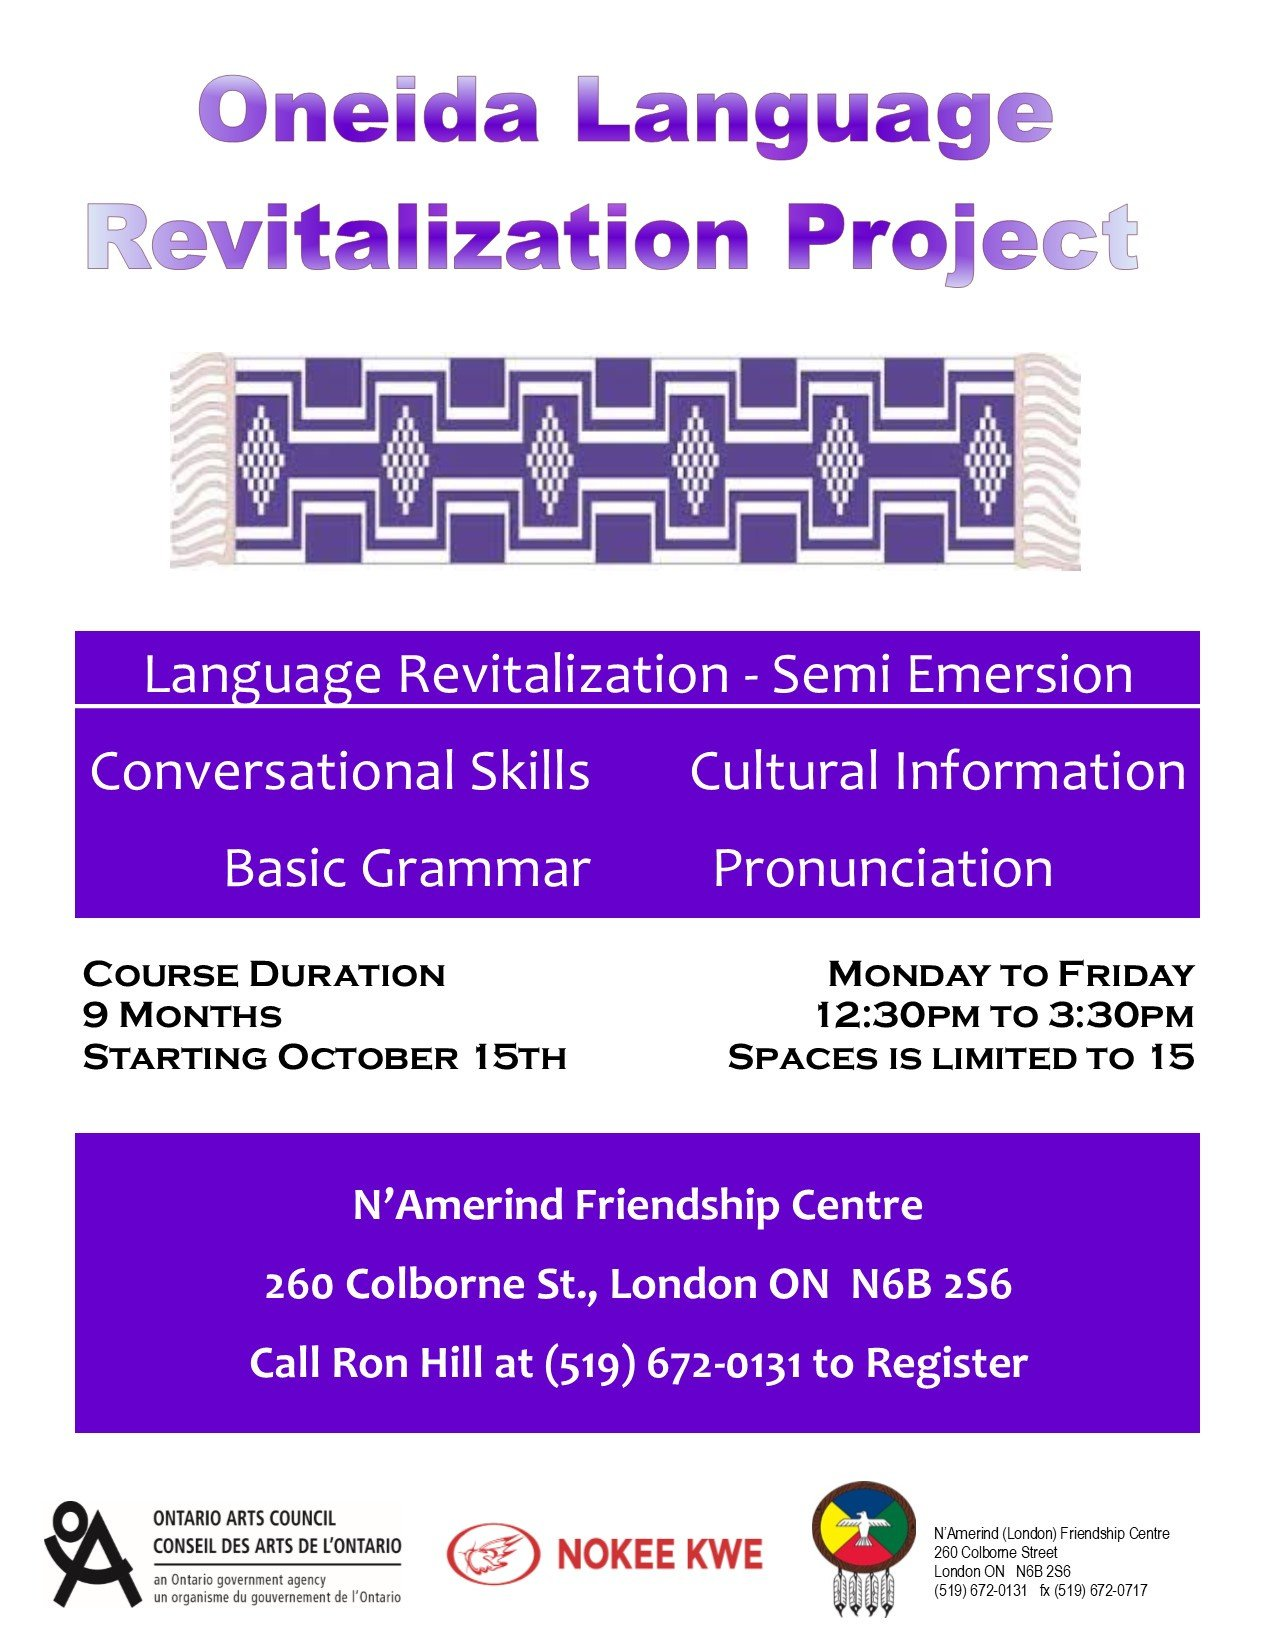 oneida language flyer